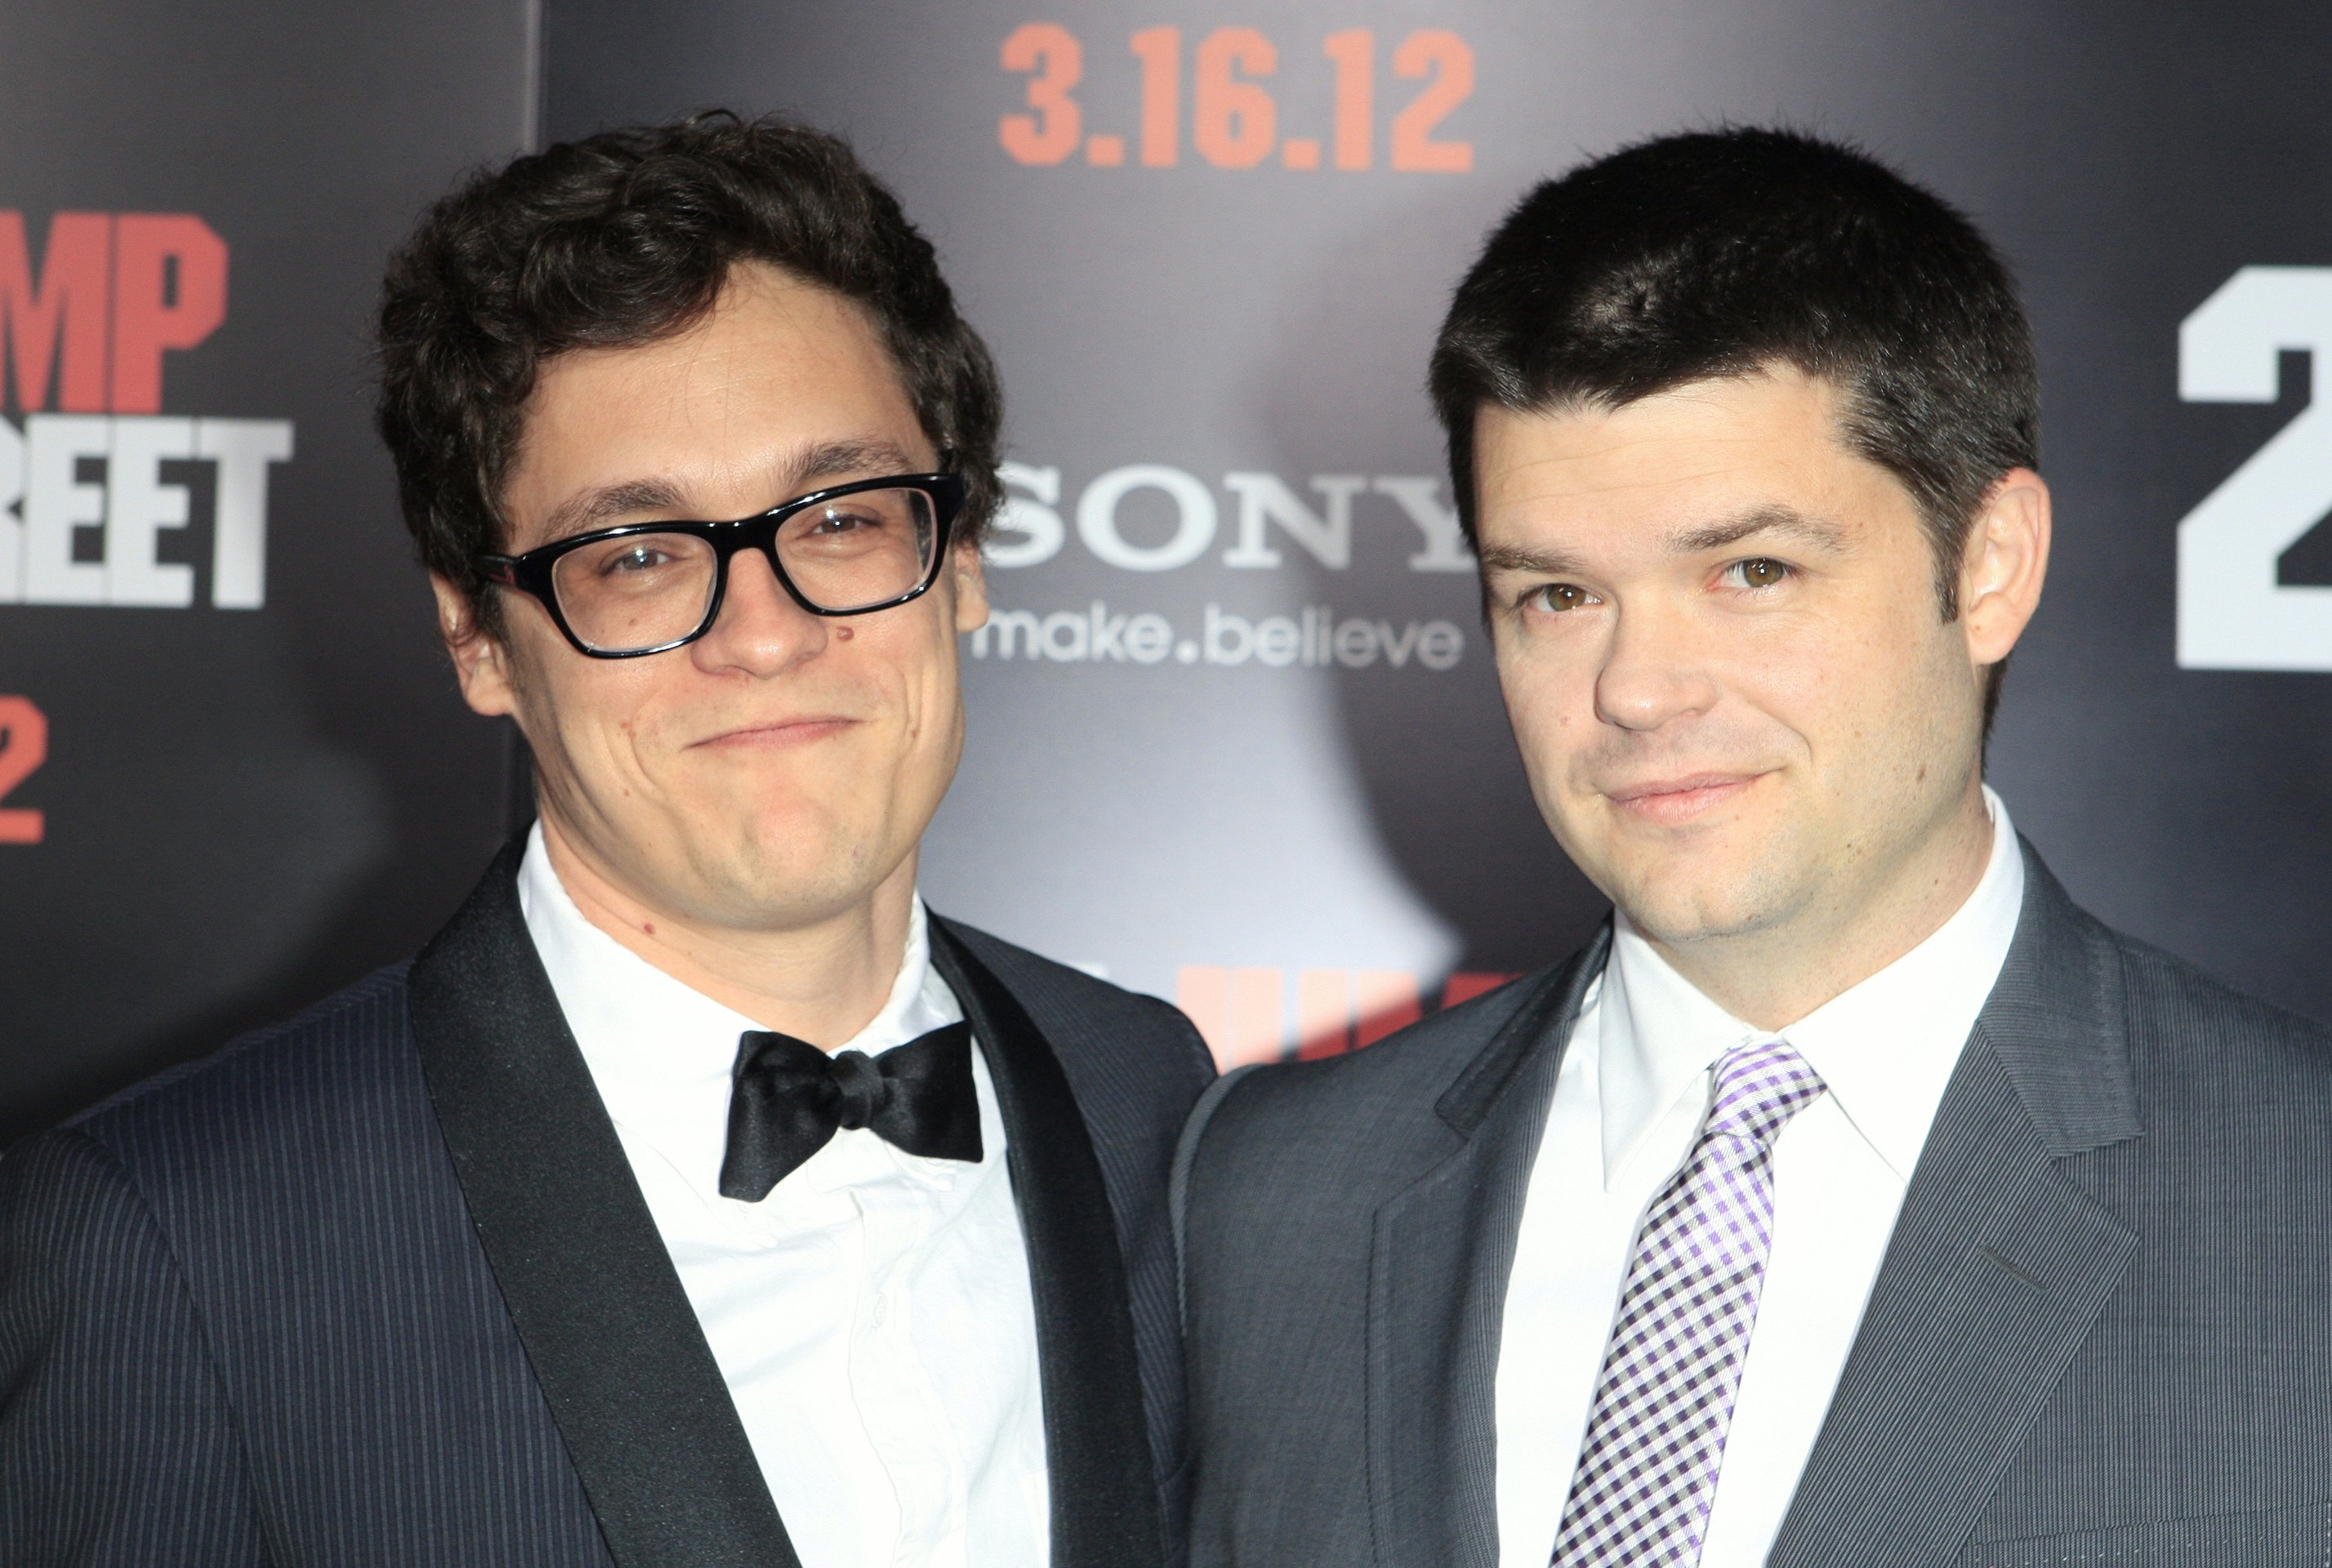 phil lord millerphil lord and christopher miller, phil lord twitter, phil lord instagram, phil lord and christopher miller movies, phil lord imdb, phil lord net worth, phil lord and chris miller movies, phil lord of the flies, phil lord and chris miller the flash, phil lord the flash, phil lord tweet, phil lord miller, phil lord star wars, phil lord irene neuwirth, phil lord and chris miller imdb, phil lord director, phil lord lego oscar, phil lord biography, phil lord e christopher miller, phil lord chris miller easy a